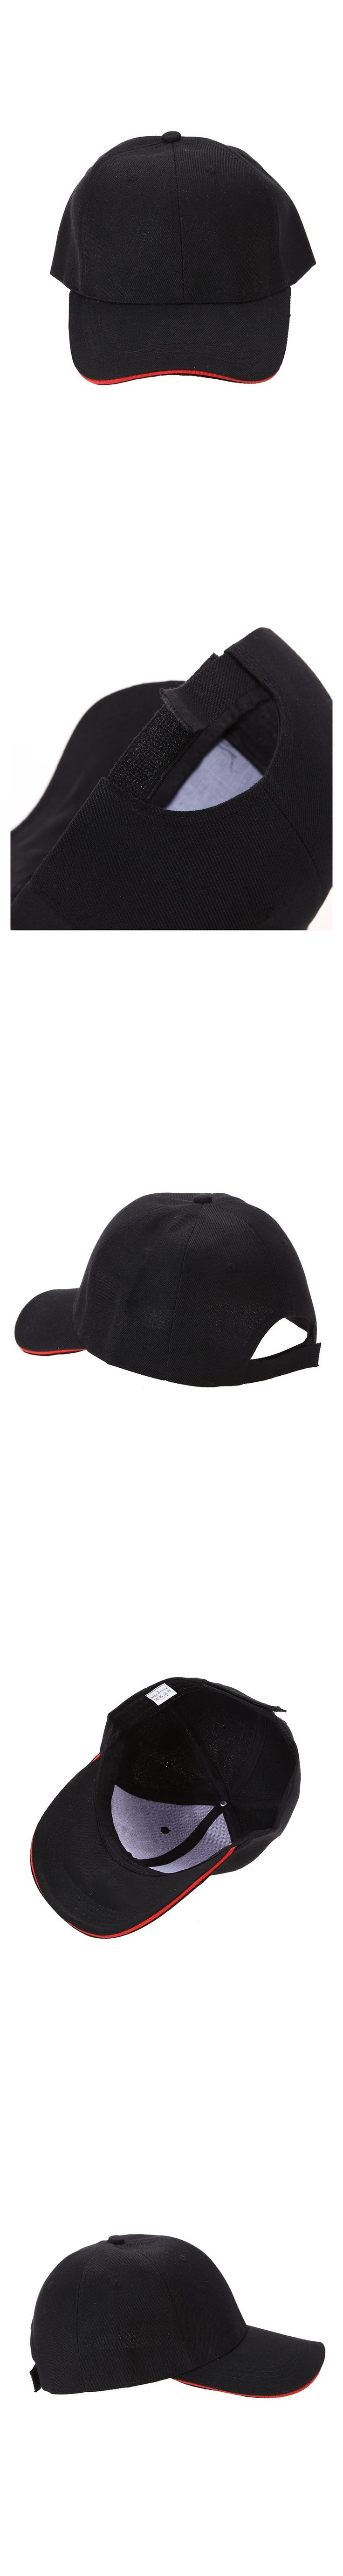 Unisex Sun Cap Outdoor Sports Hat Solid Color Baseball Cap Black